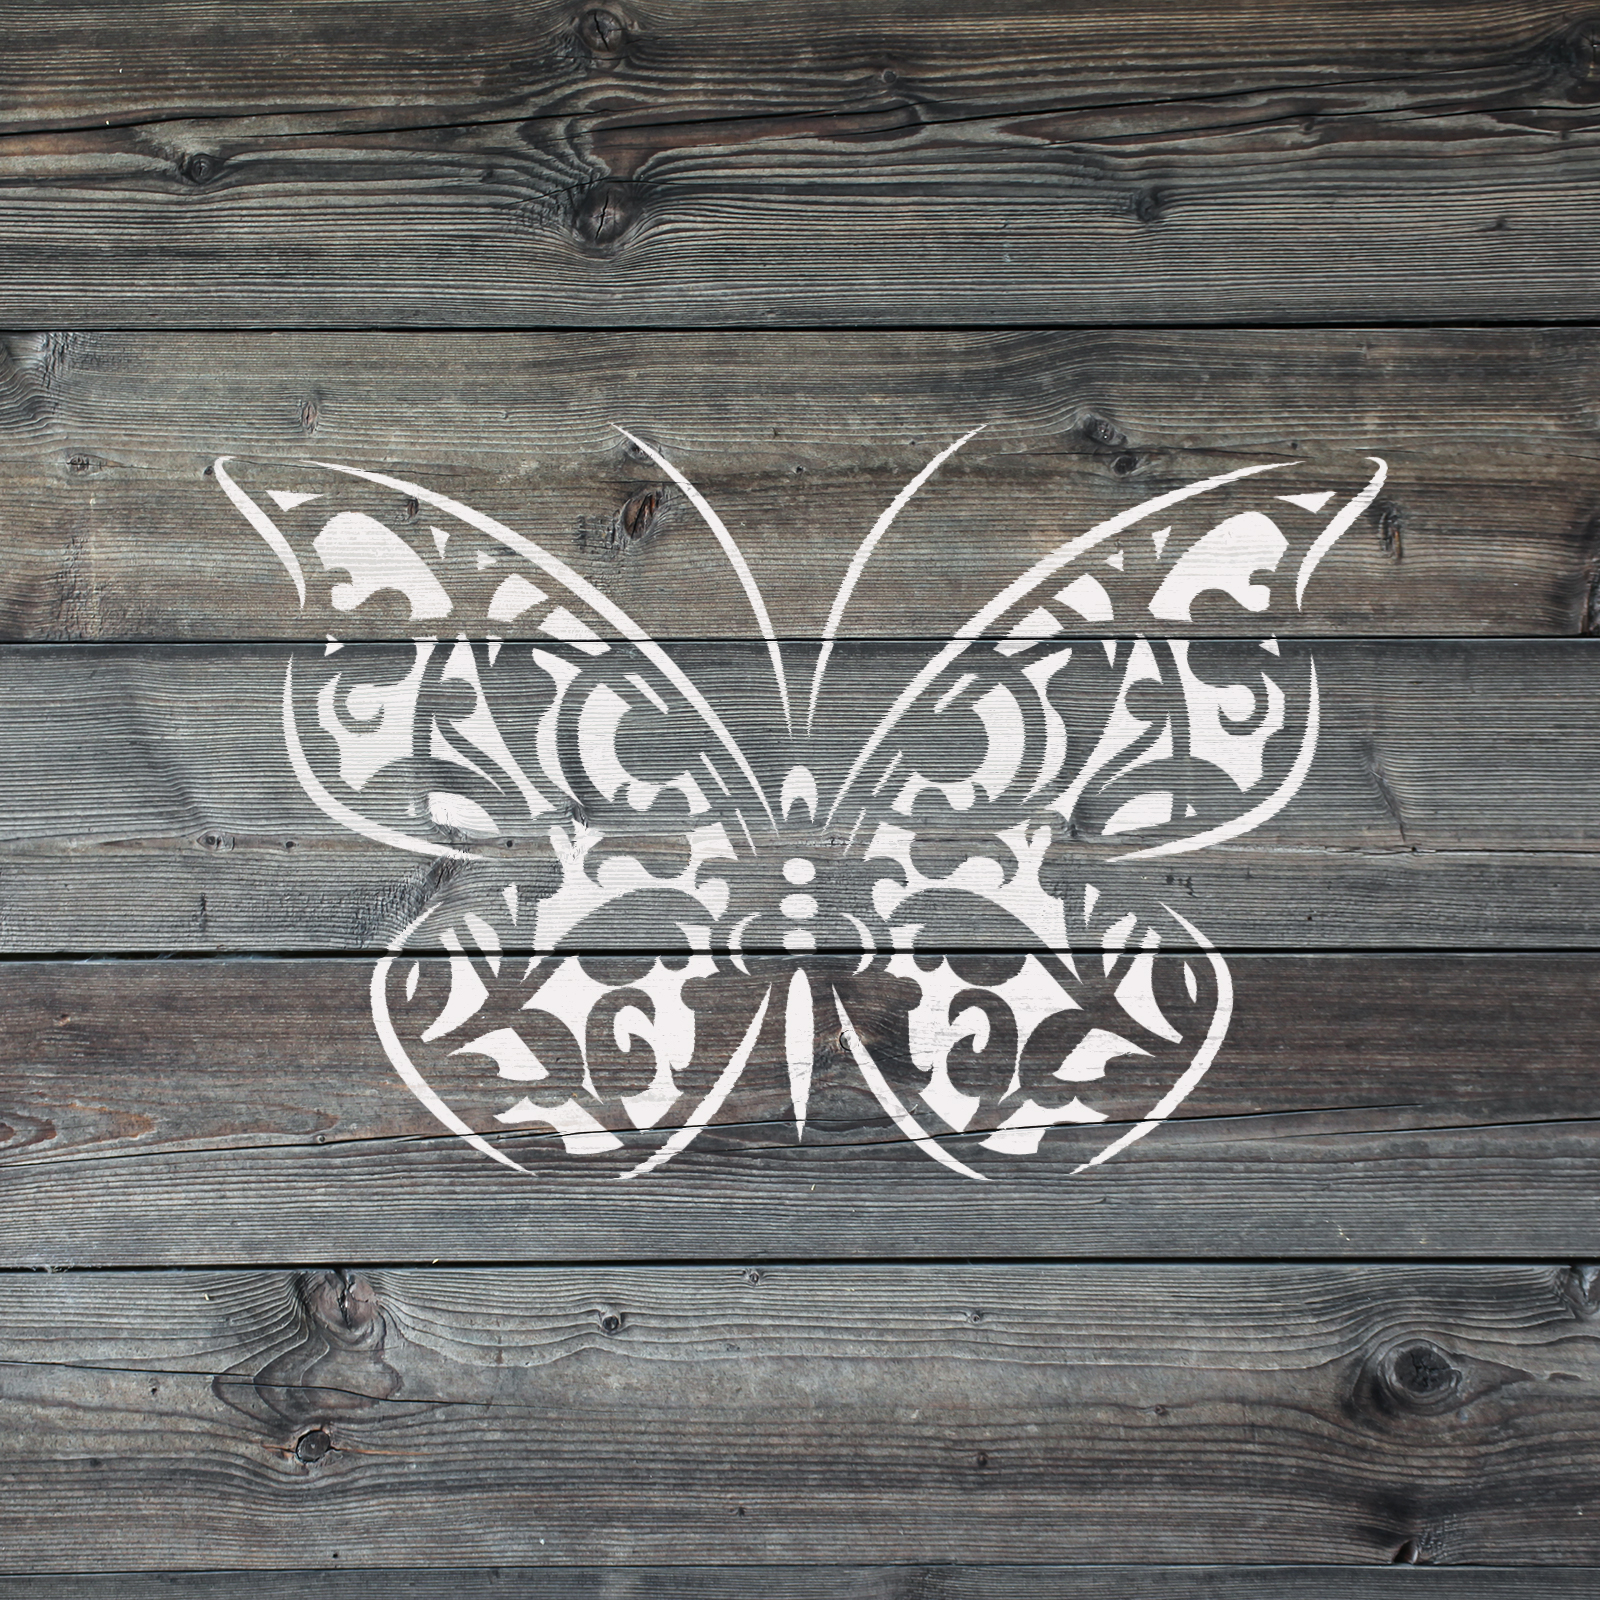 Butterfly Gothic Stencil - Reusable Stencils of a Gothic Butterfly